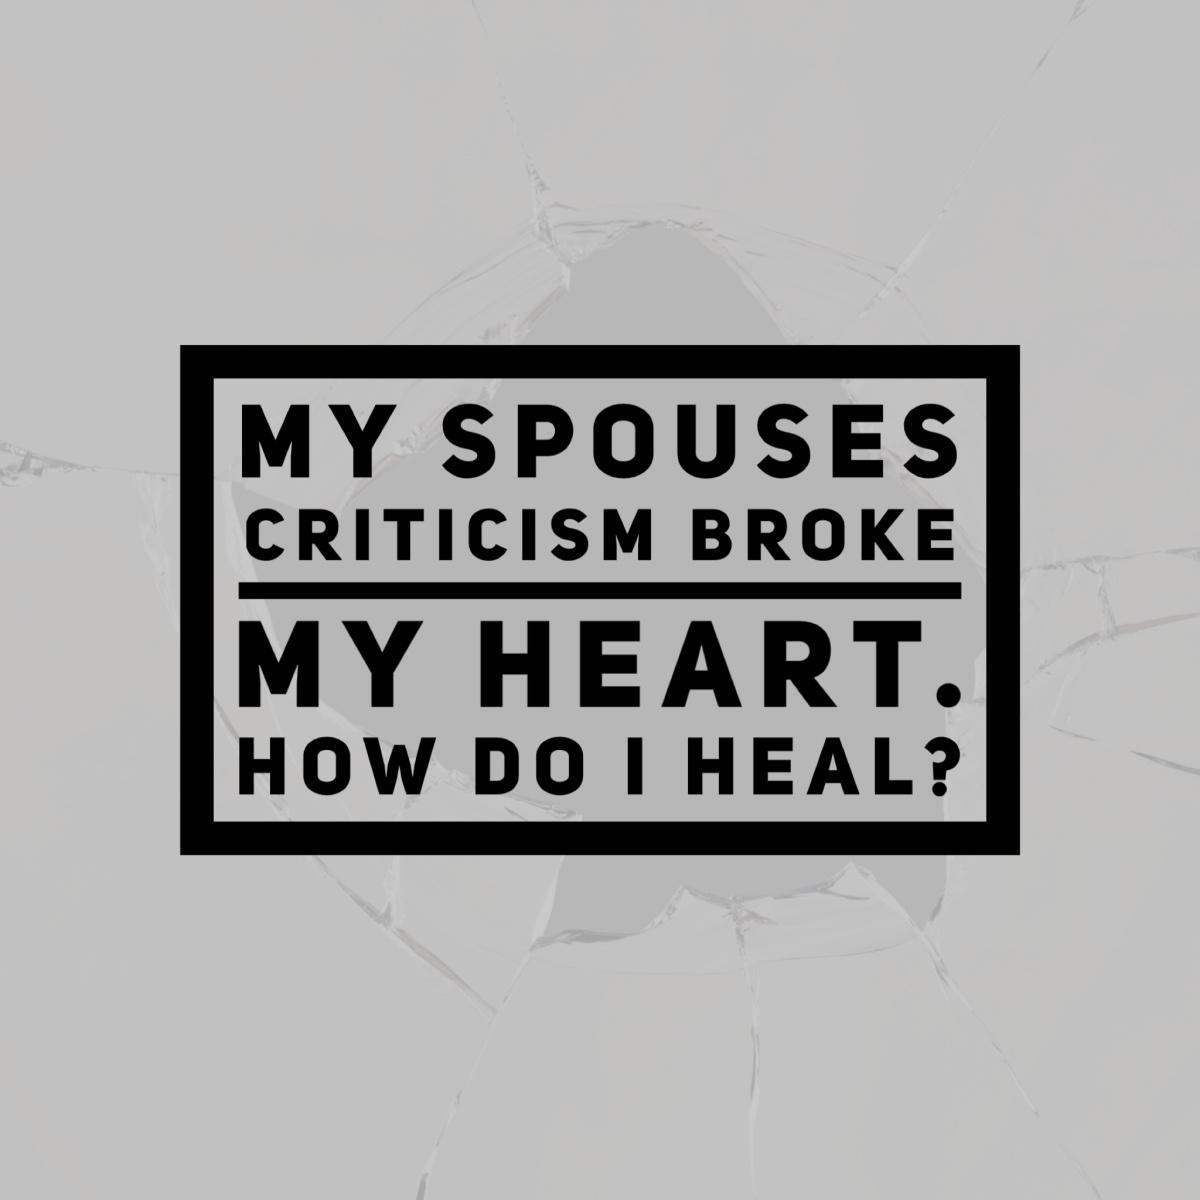 MY SPOUSE'S CRITICISM BROKE MY HEART. HOW DO I HEAL?